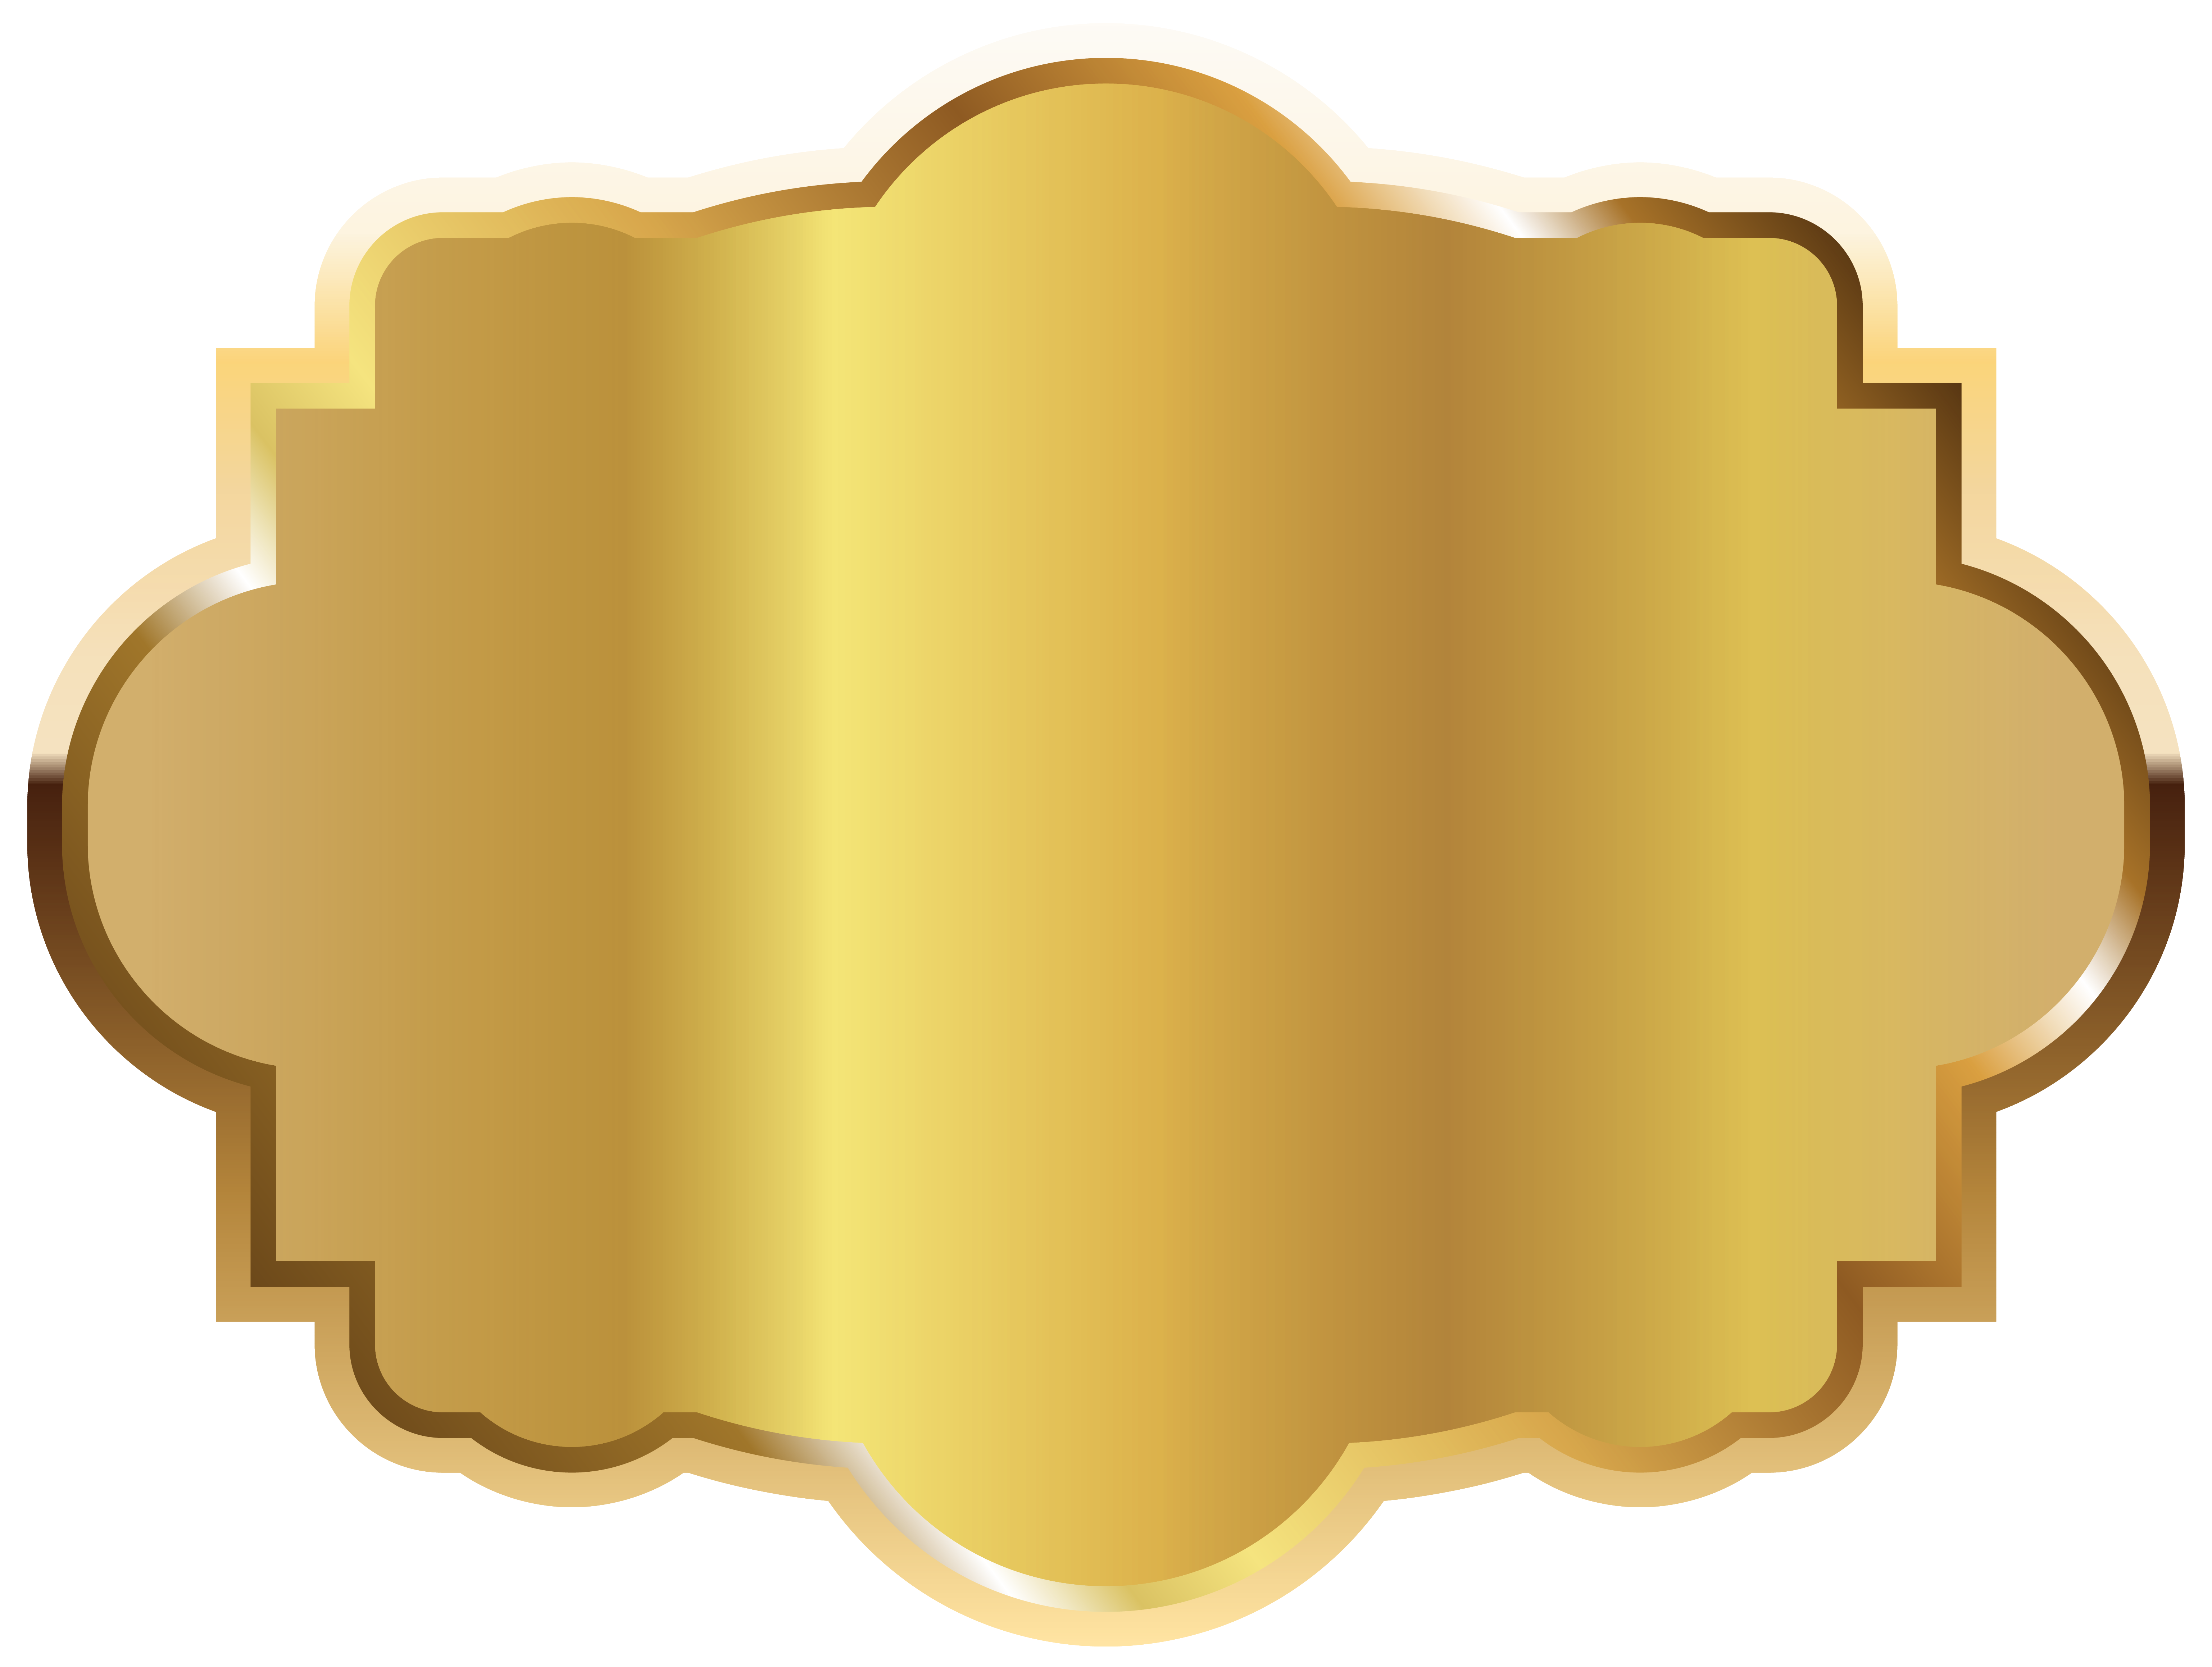 Gold labels png. Label template clipart picture